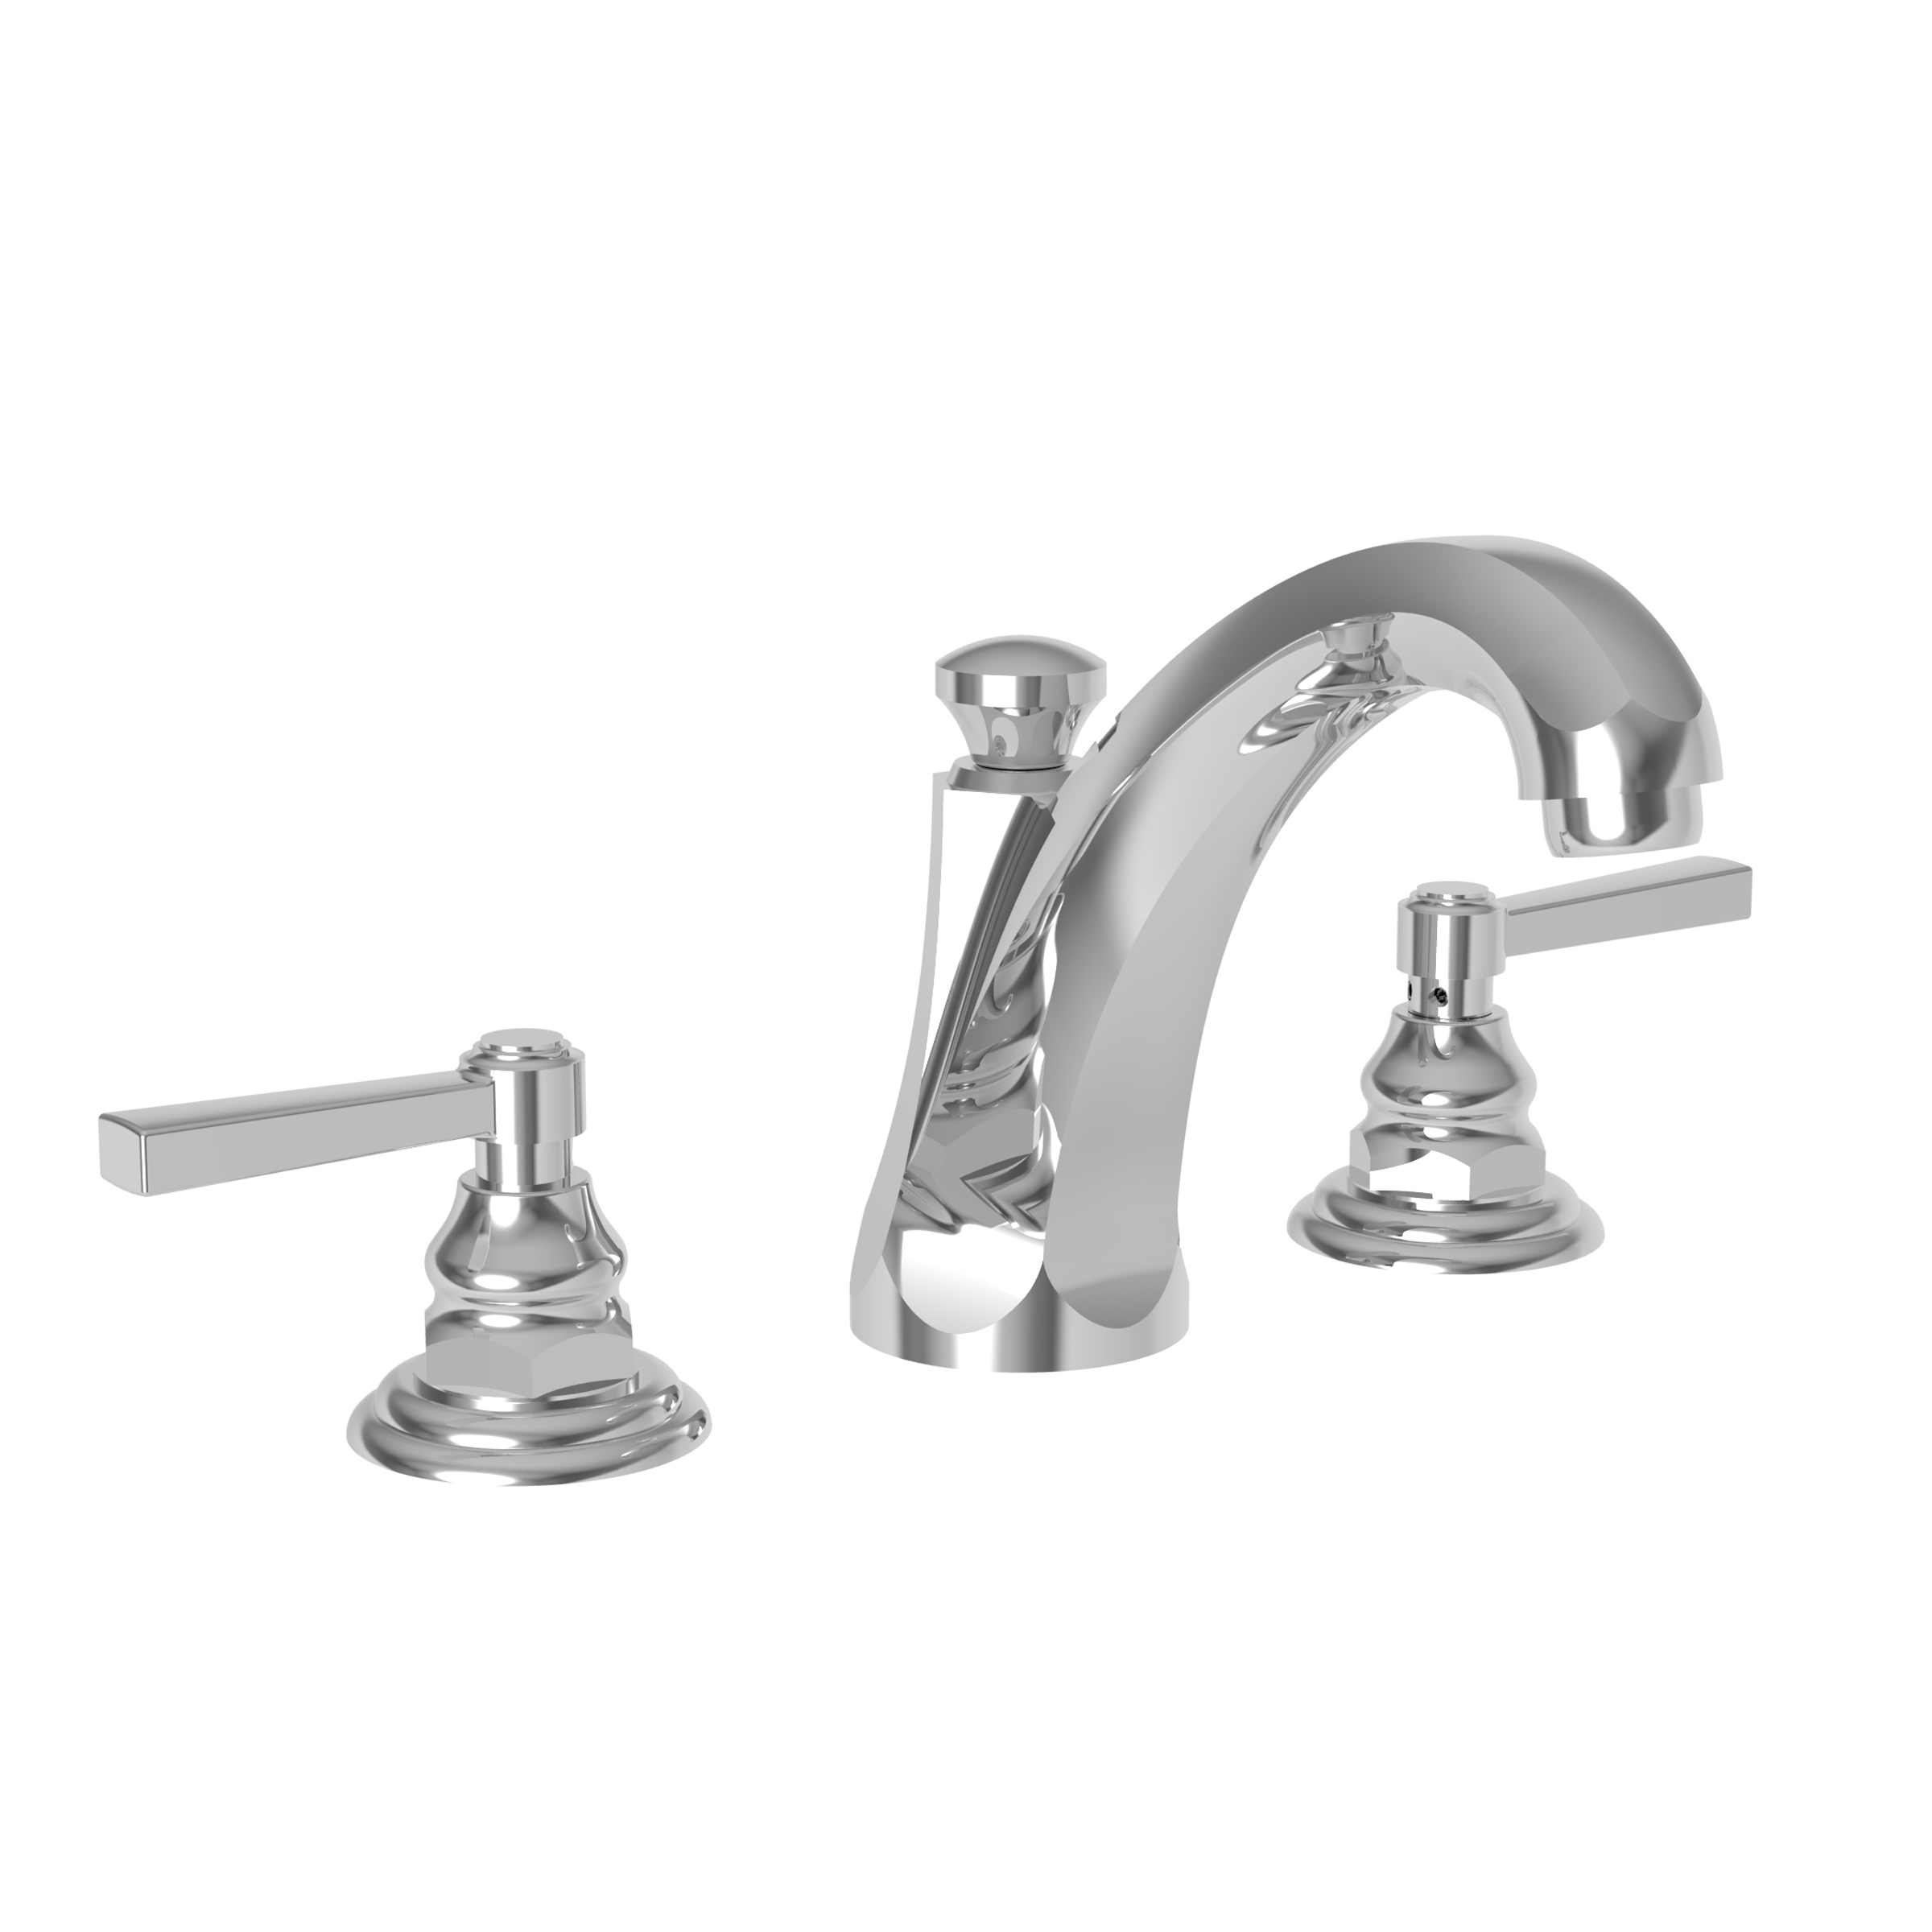 Newport brass 910c astor 910c widespread lavatory faucet newport brass faucets Newport brass bathroom faucets